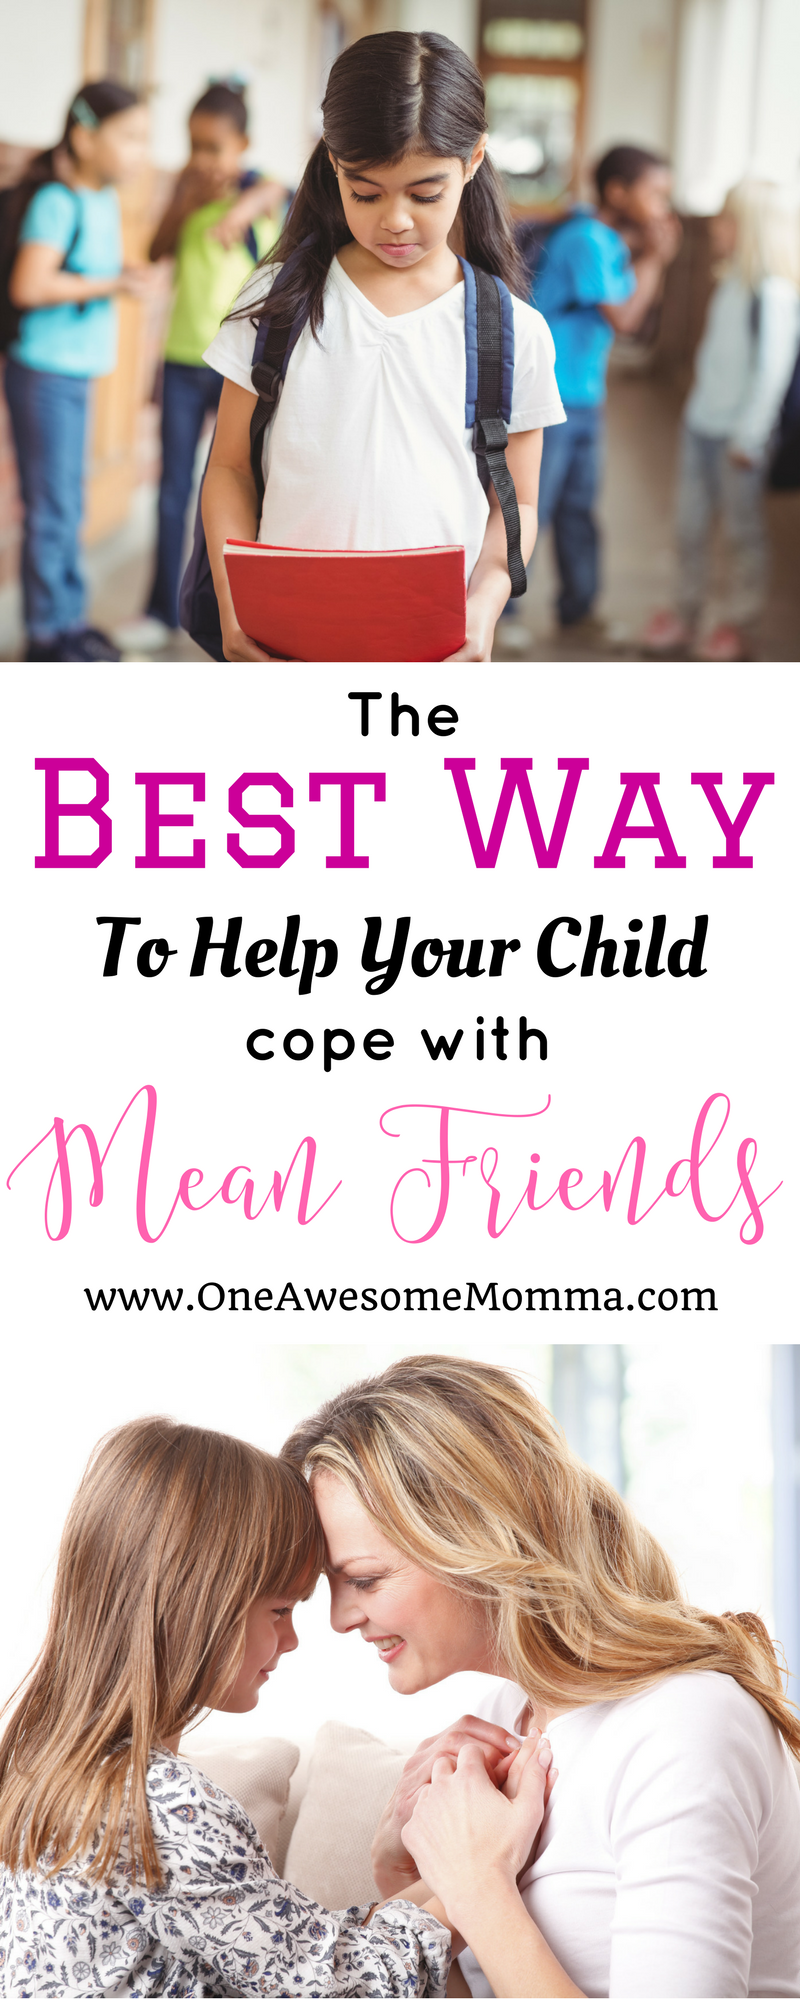 Worried Mother Png Coloring - How To Help Your Child Deal With Mean Friends | Parenting 101 ...